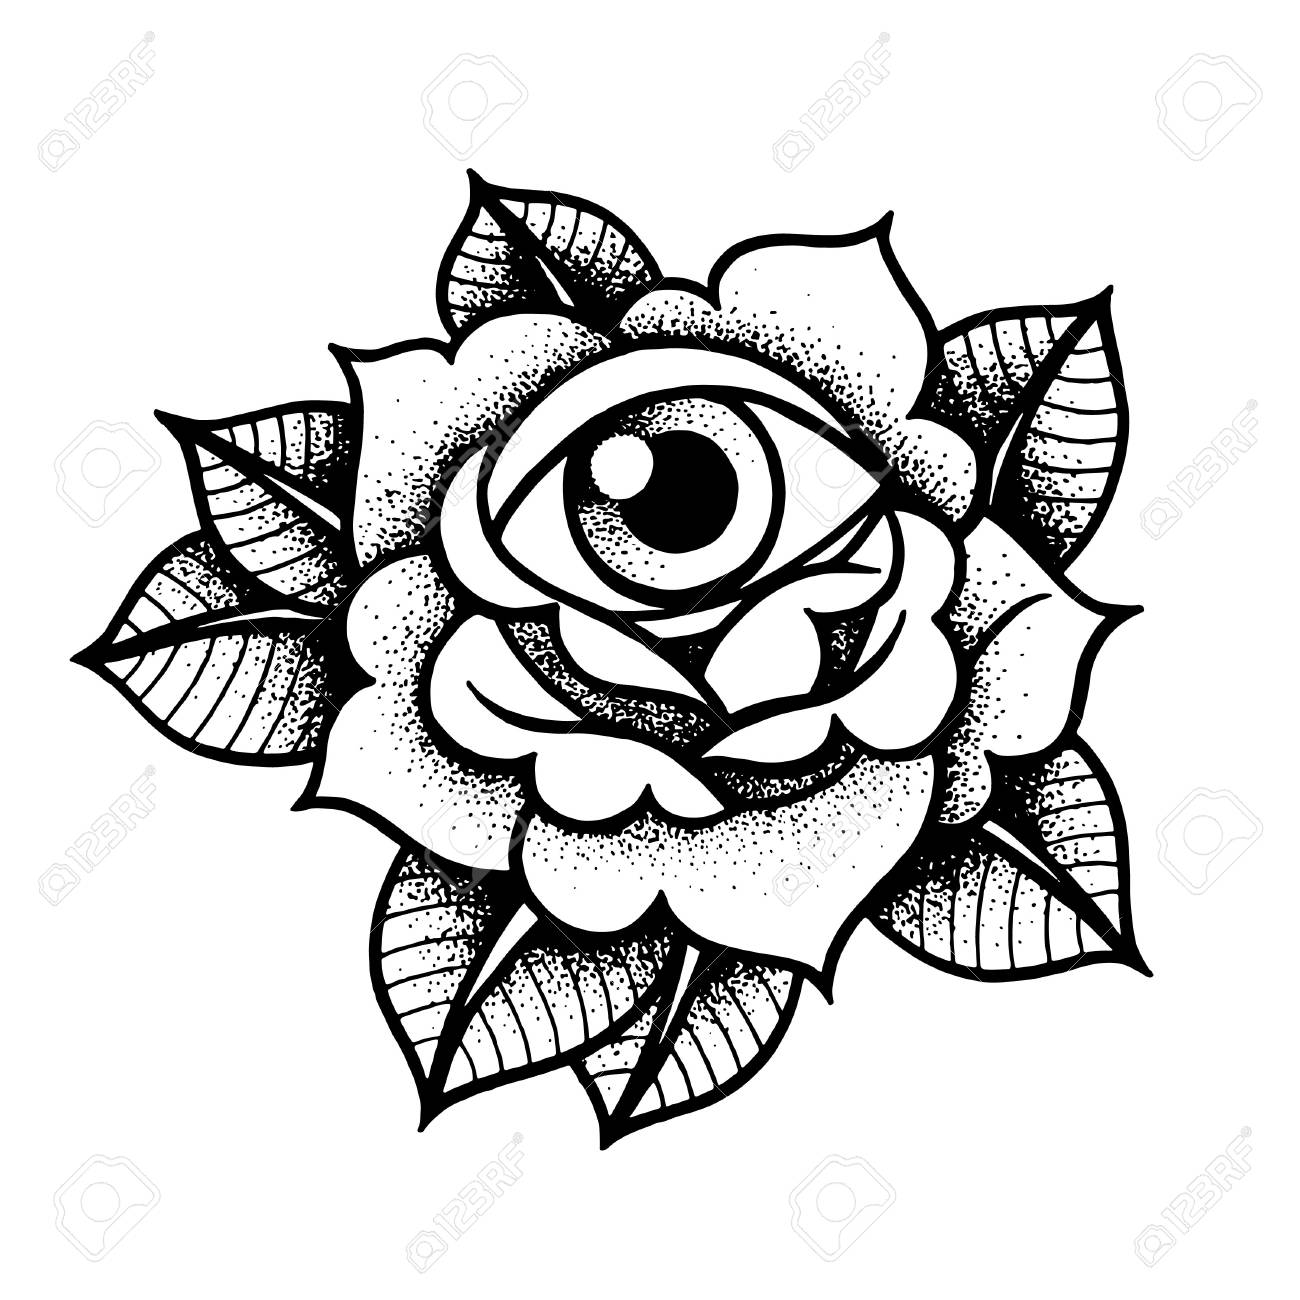 39787921672c5 Old School Rose Tattoo With Eye. Royalty Free Cliparts, Vectors, And ...